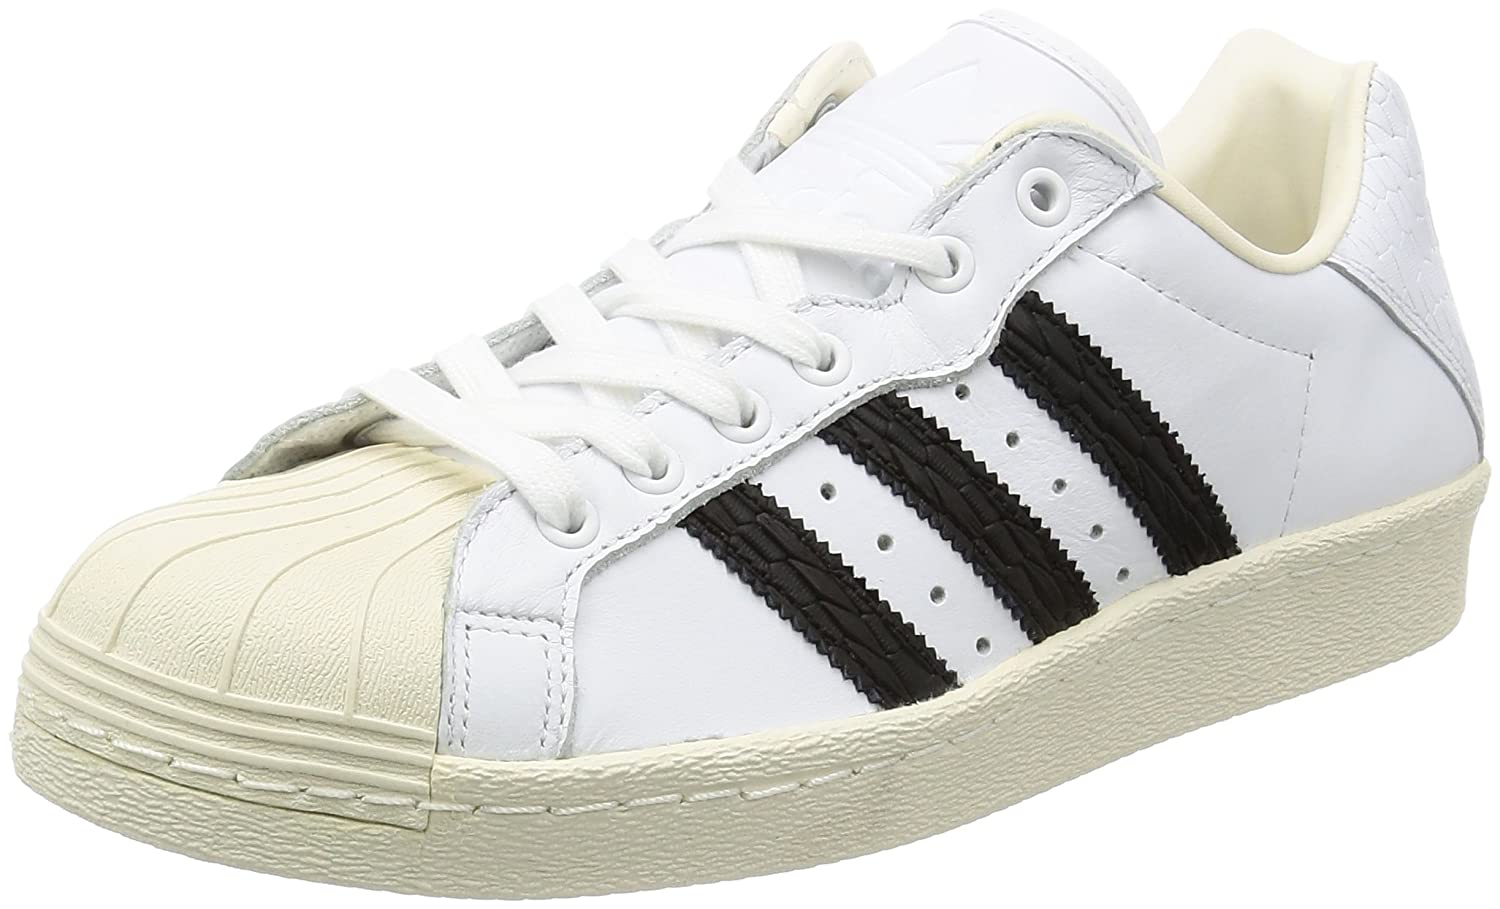 BUTY ADIDAS ORIGINALS ULTRASTAR 80S BB0171 - 41